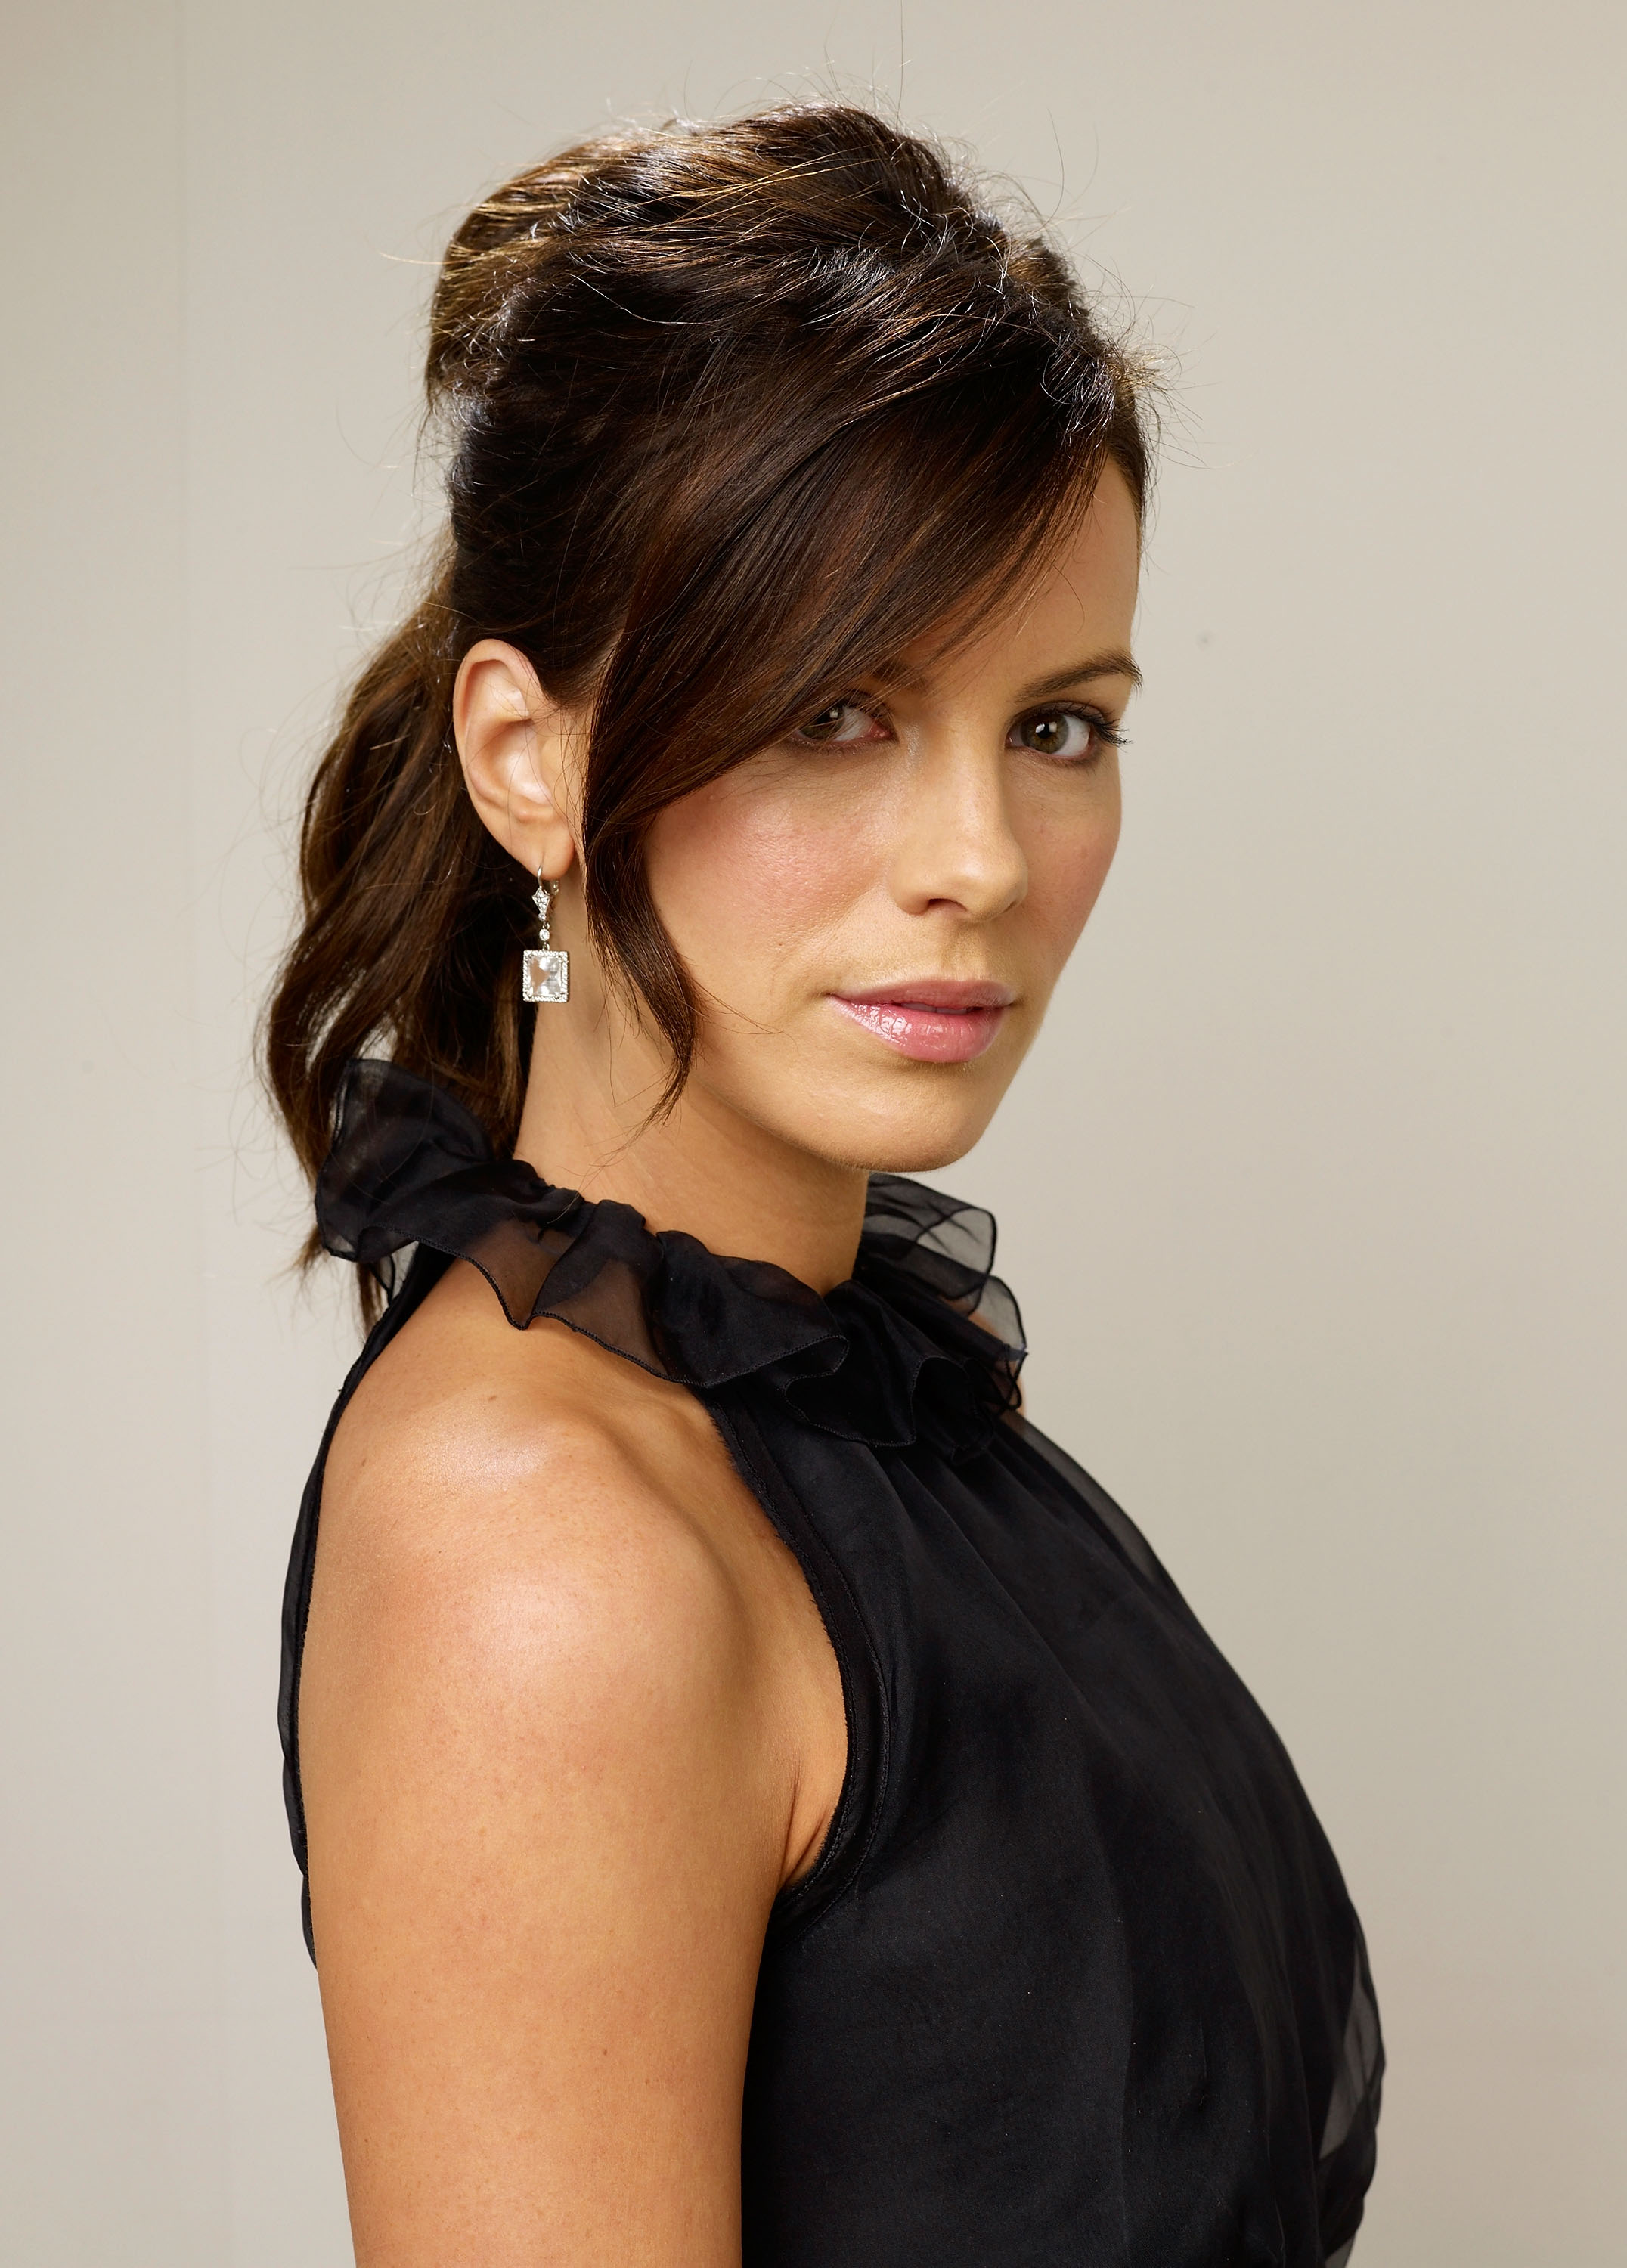 83853_Celebutopia-Kate_Beckinsale-Nothing_But_The_Truth_TIFF_2008_Portrait_Session-02_122_1039lo.jpg